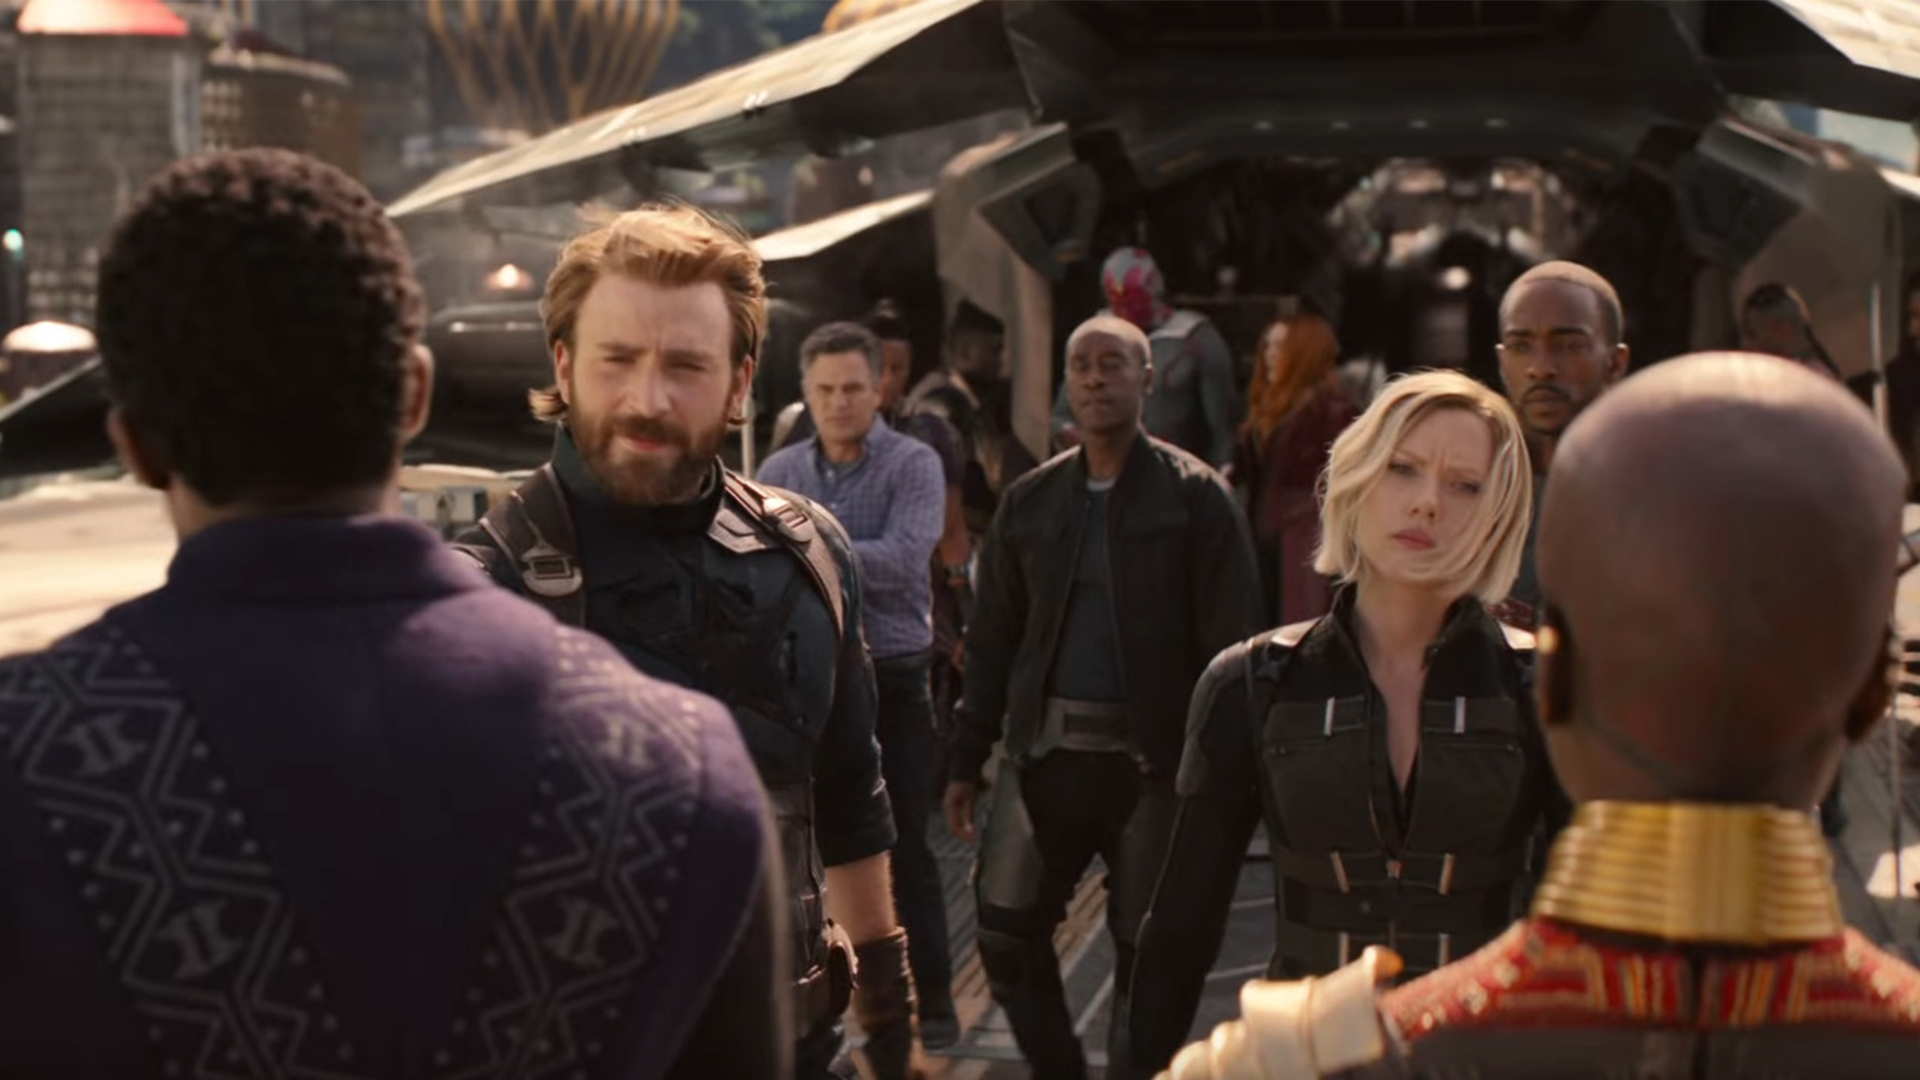 'Avengers: Infinity War' set to hit PH cinemas in April